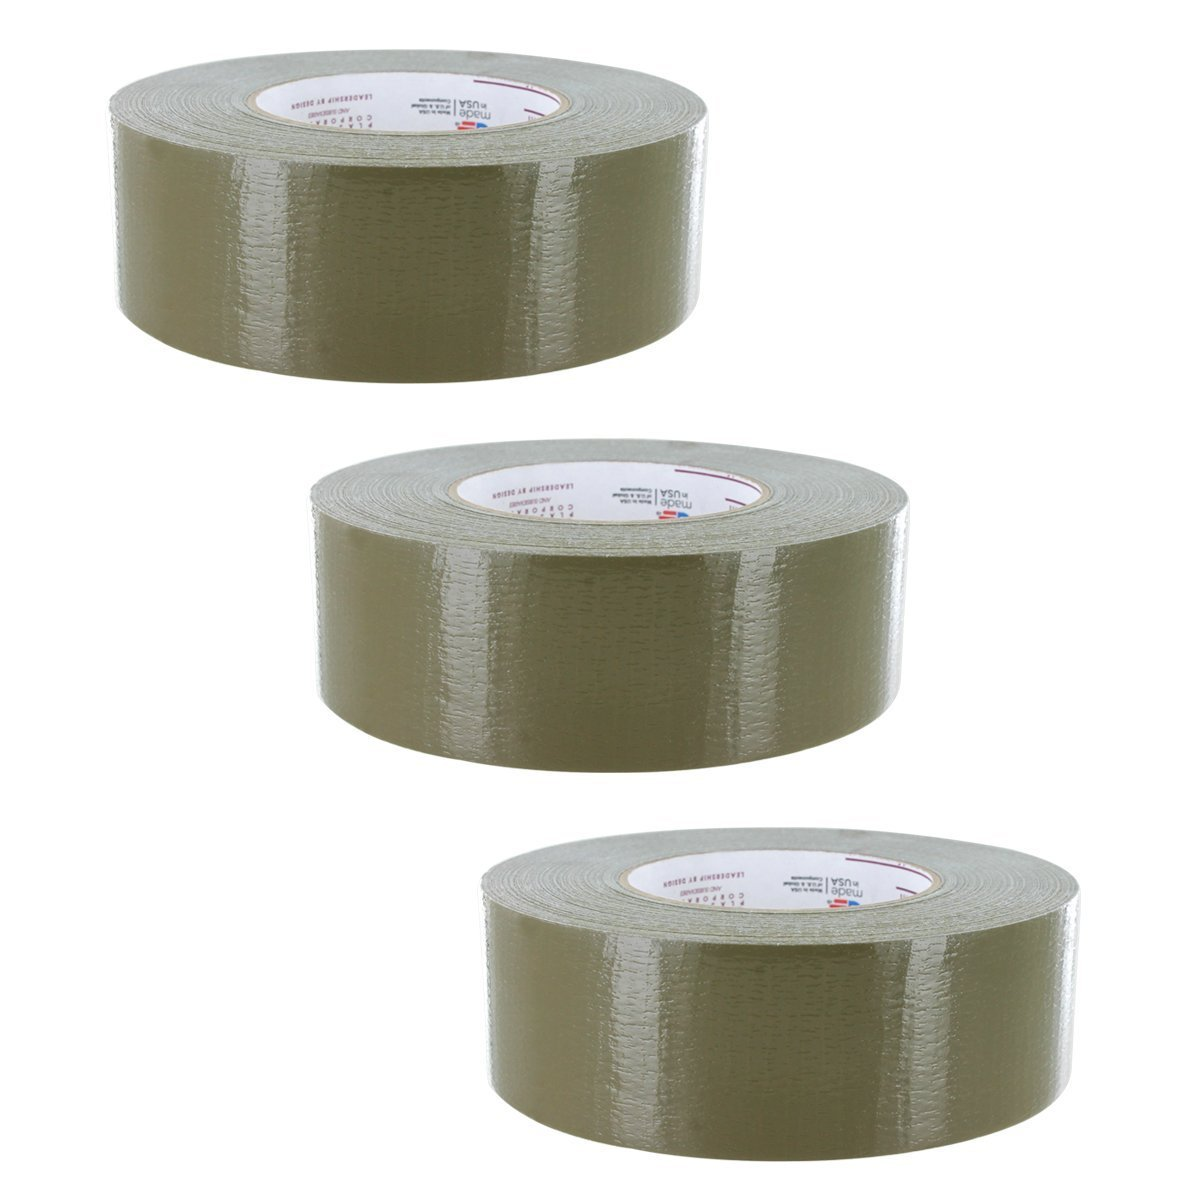 Nashua Duct Tape 2 in x 60 yd Olive Drab 9 mil 3 Pack